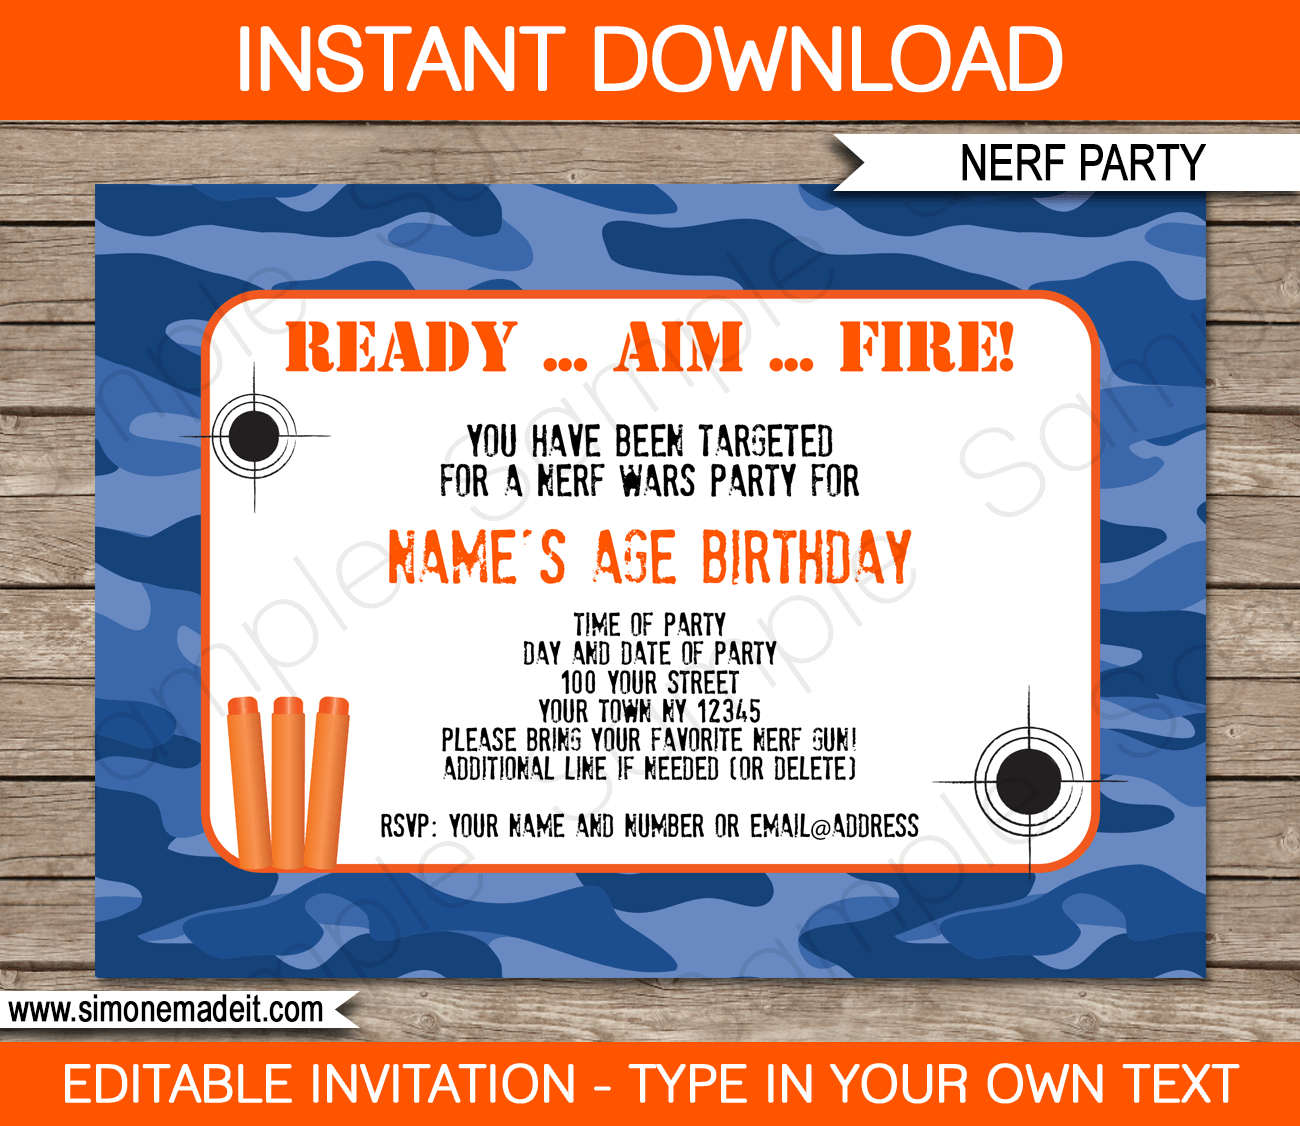 Nerf Party Invitations Template – Blue Camo | Boys Birthdays | Nerf - Free Printable Nerf